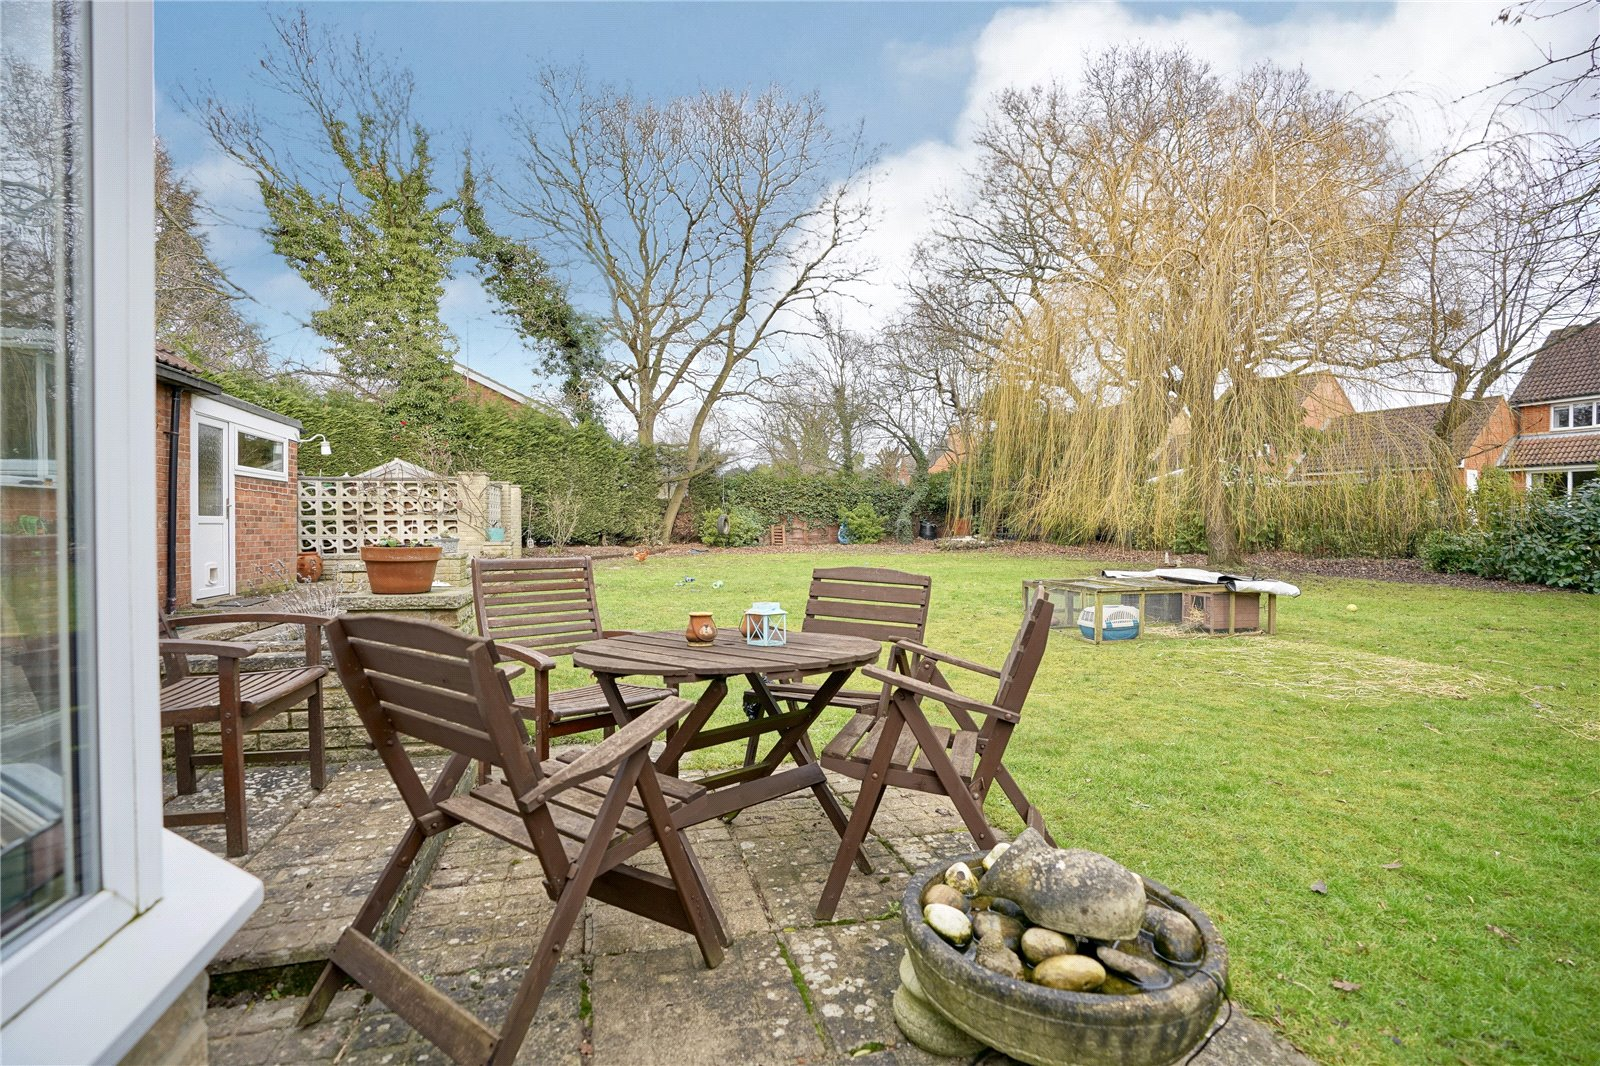 3 bed house for sale in Hemingford Grey, PE28 9BS 12